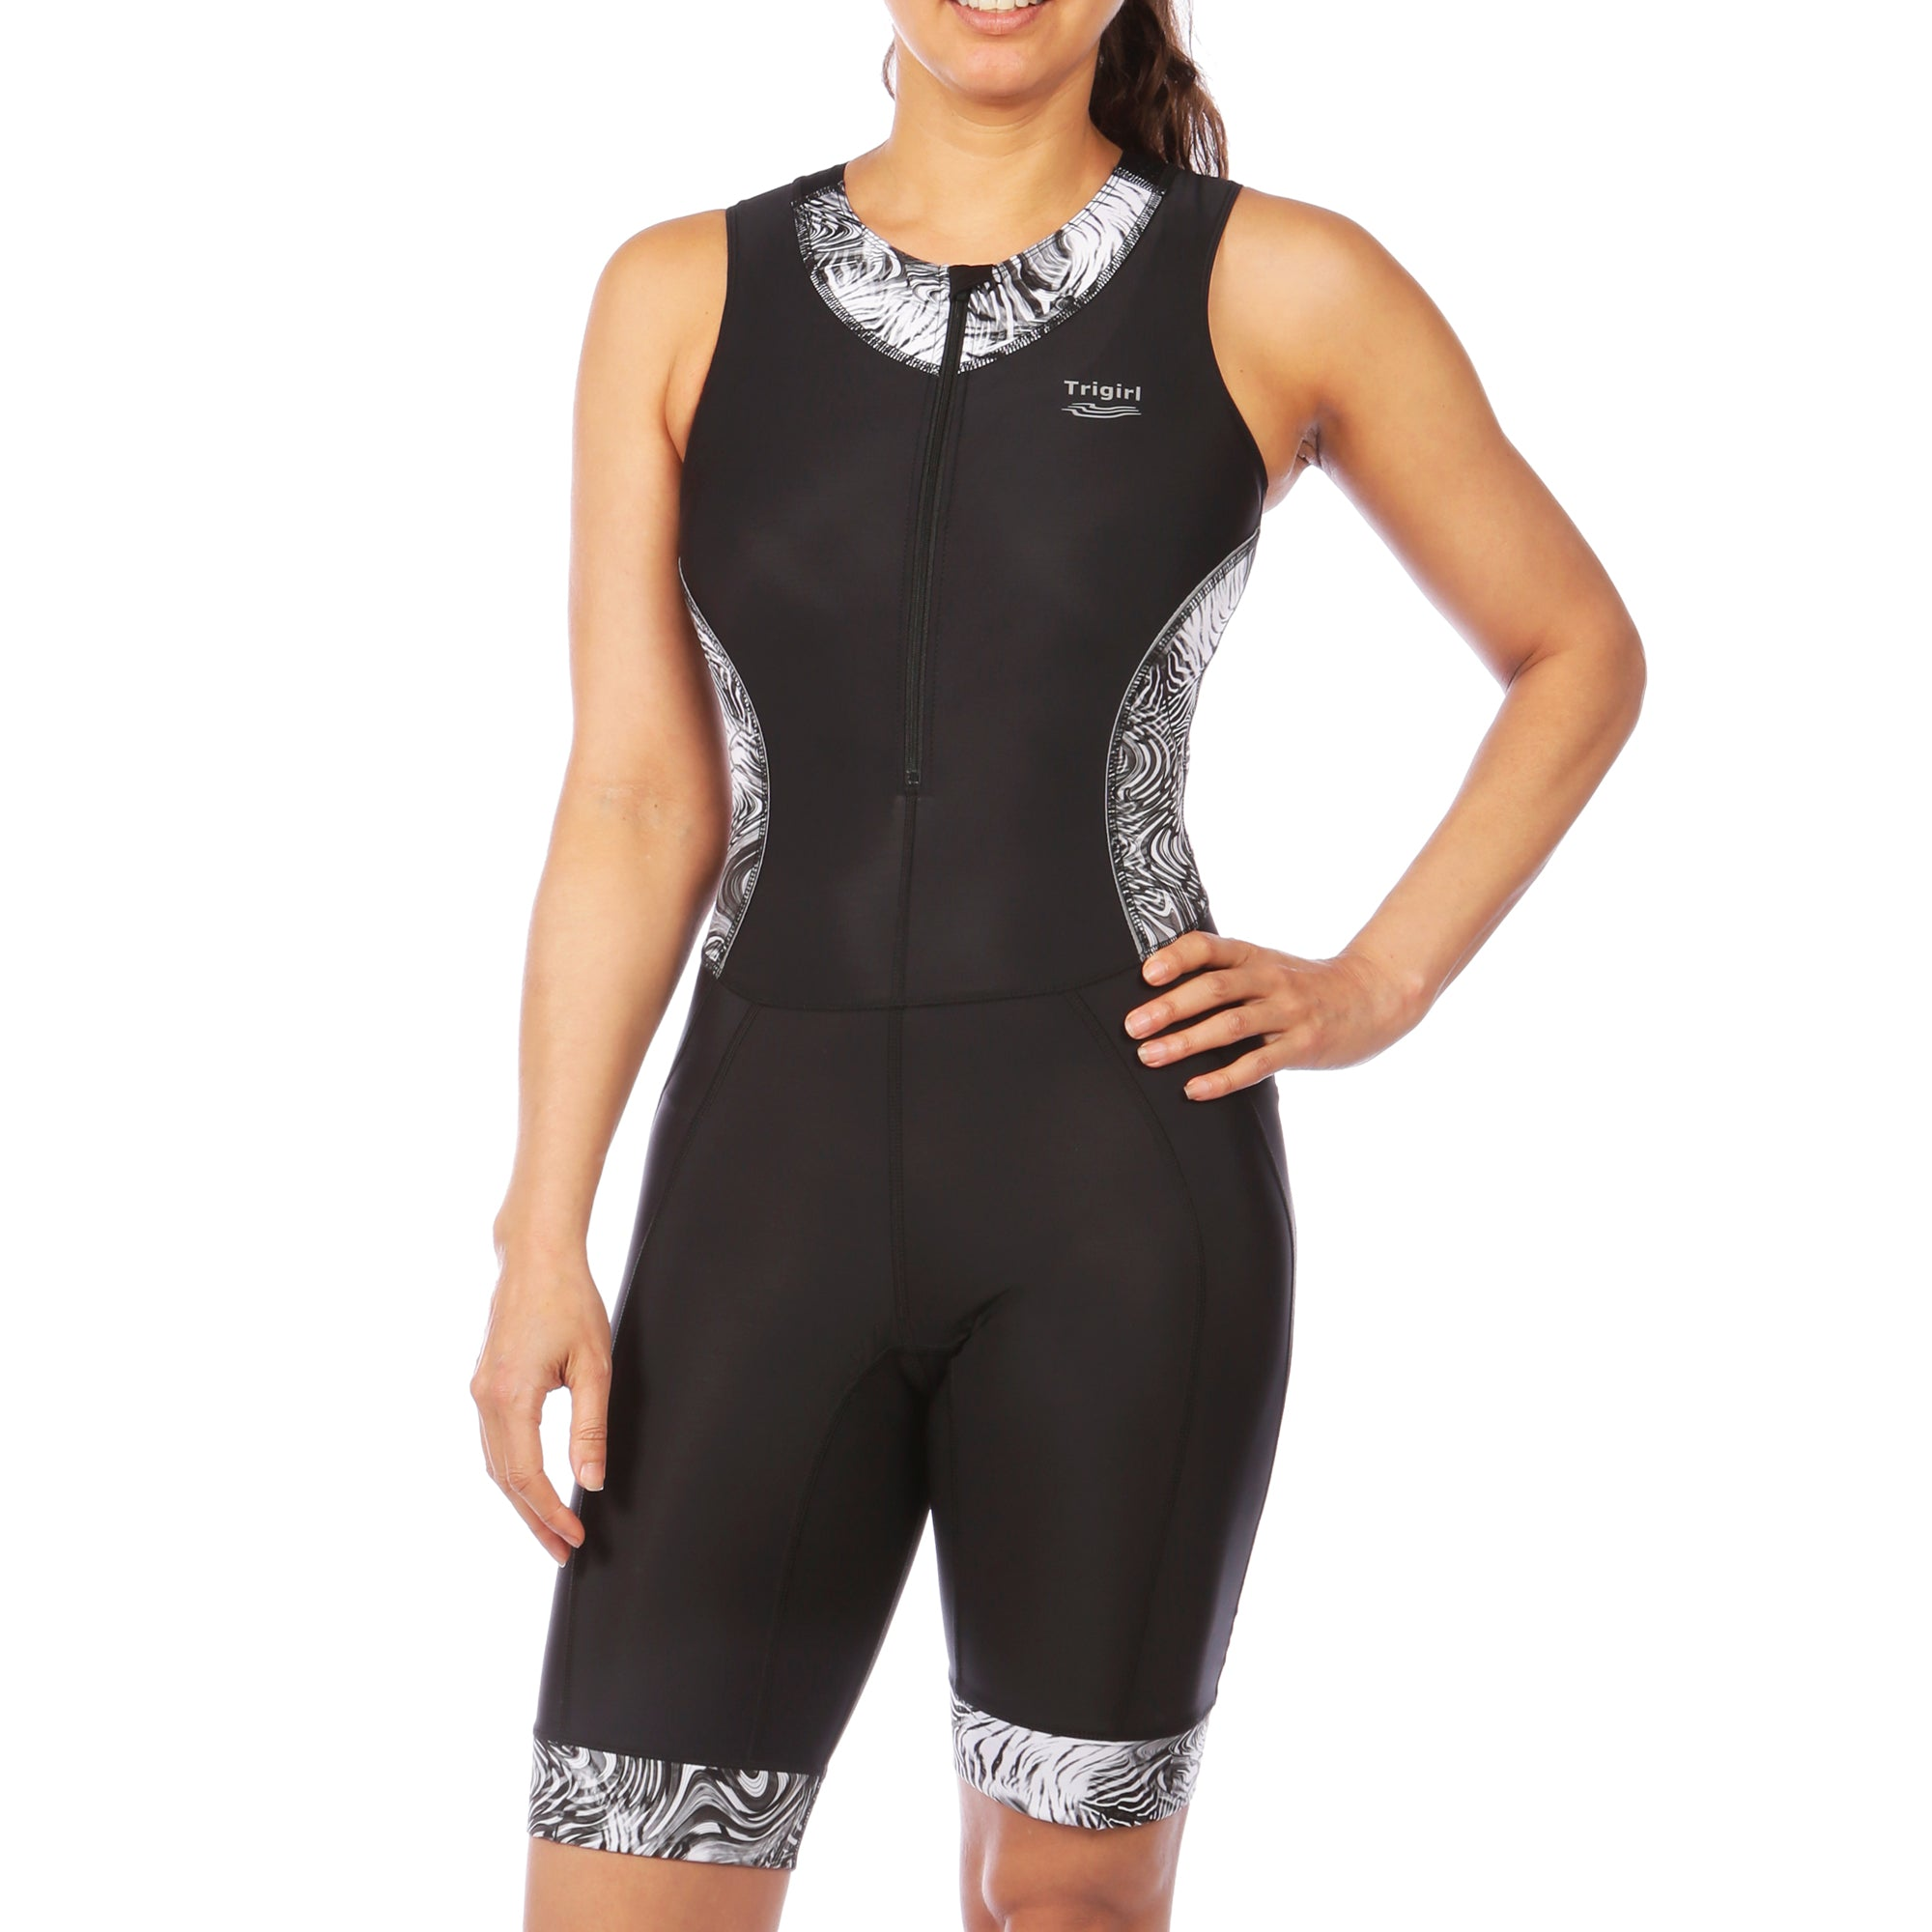 Ritzy Trisuit with Support Bra in Hidden Zebra